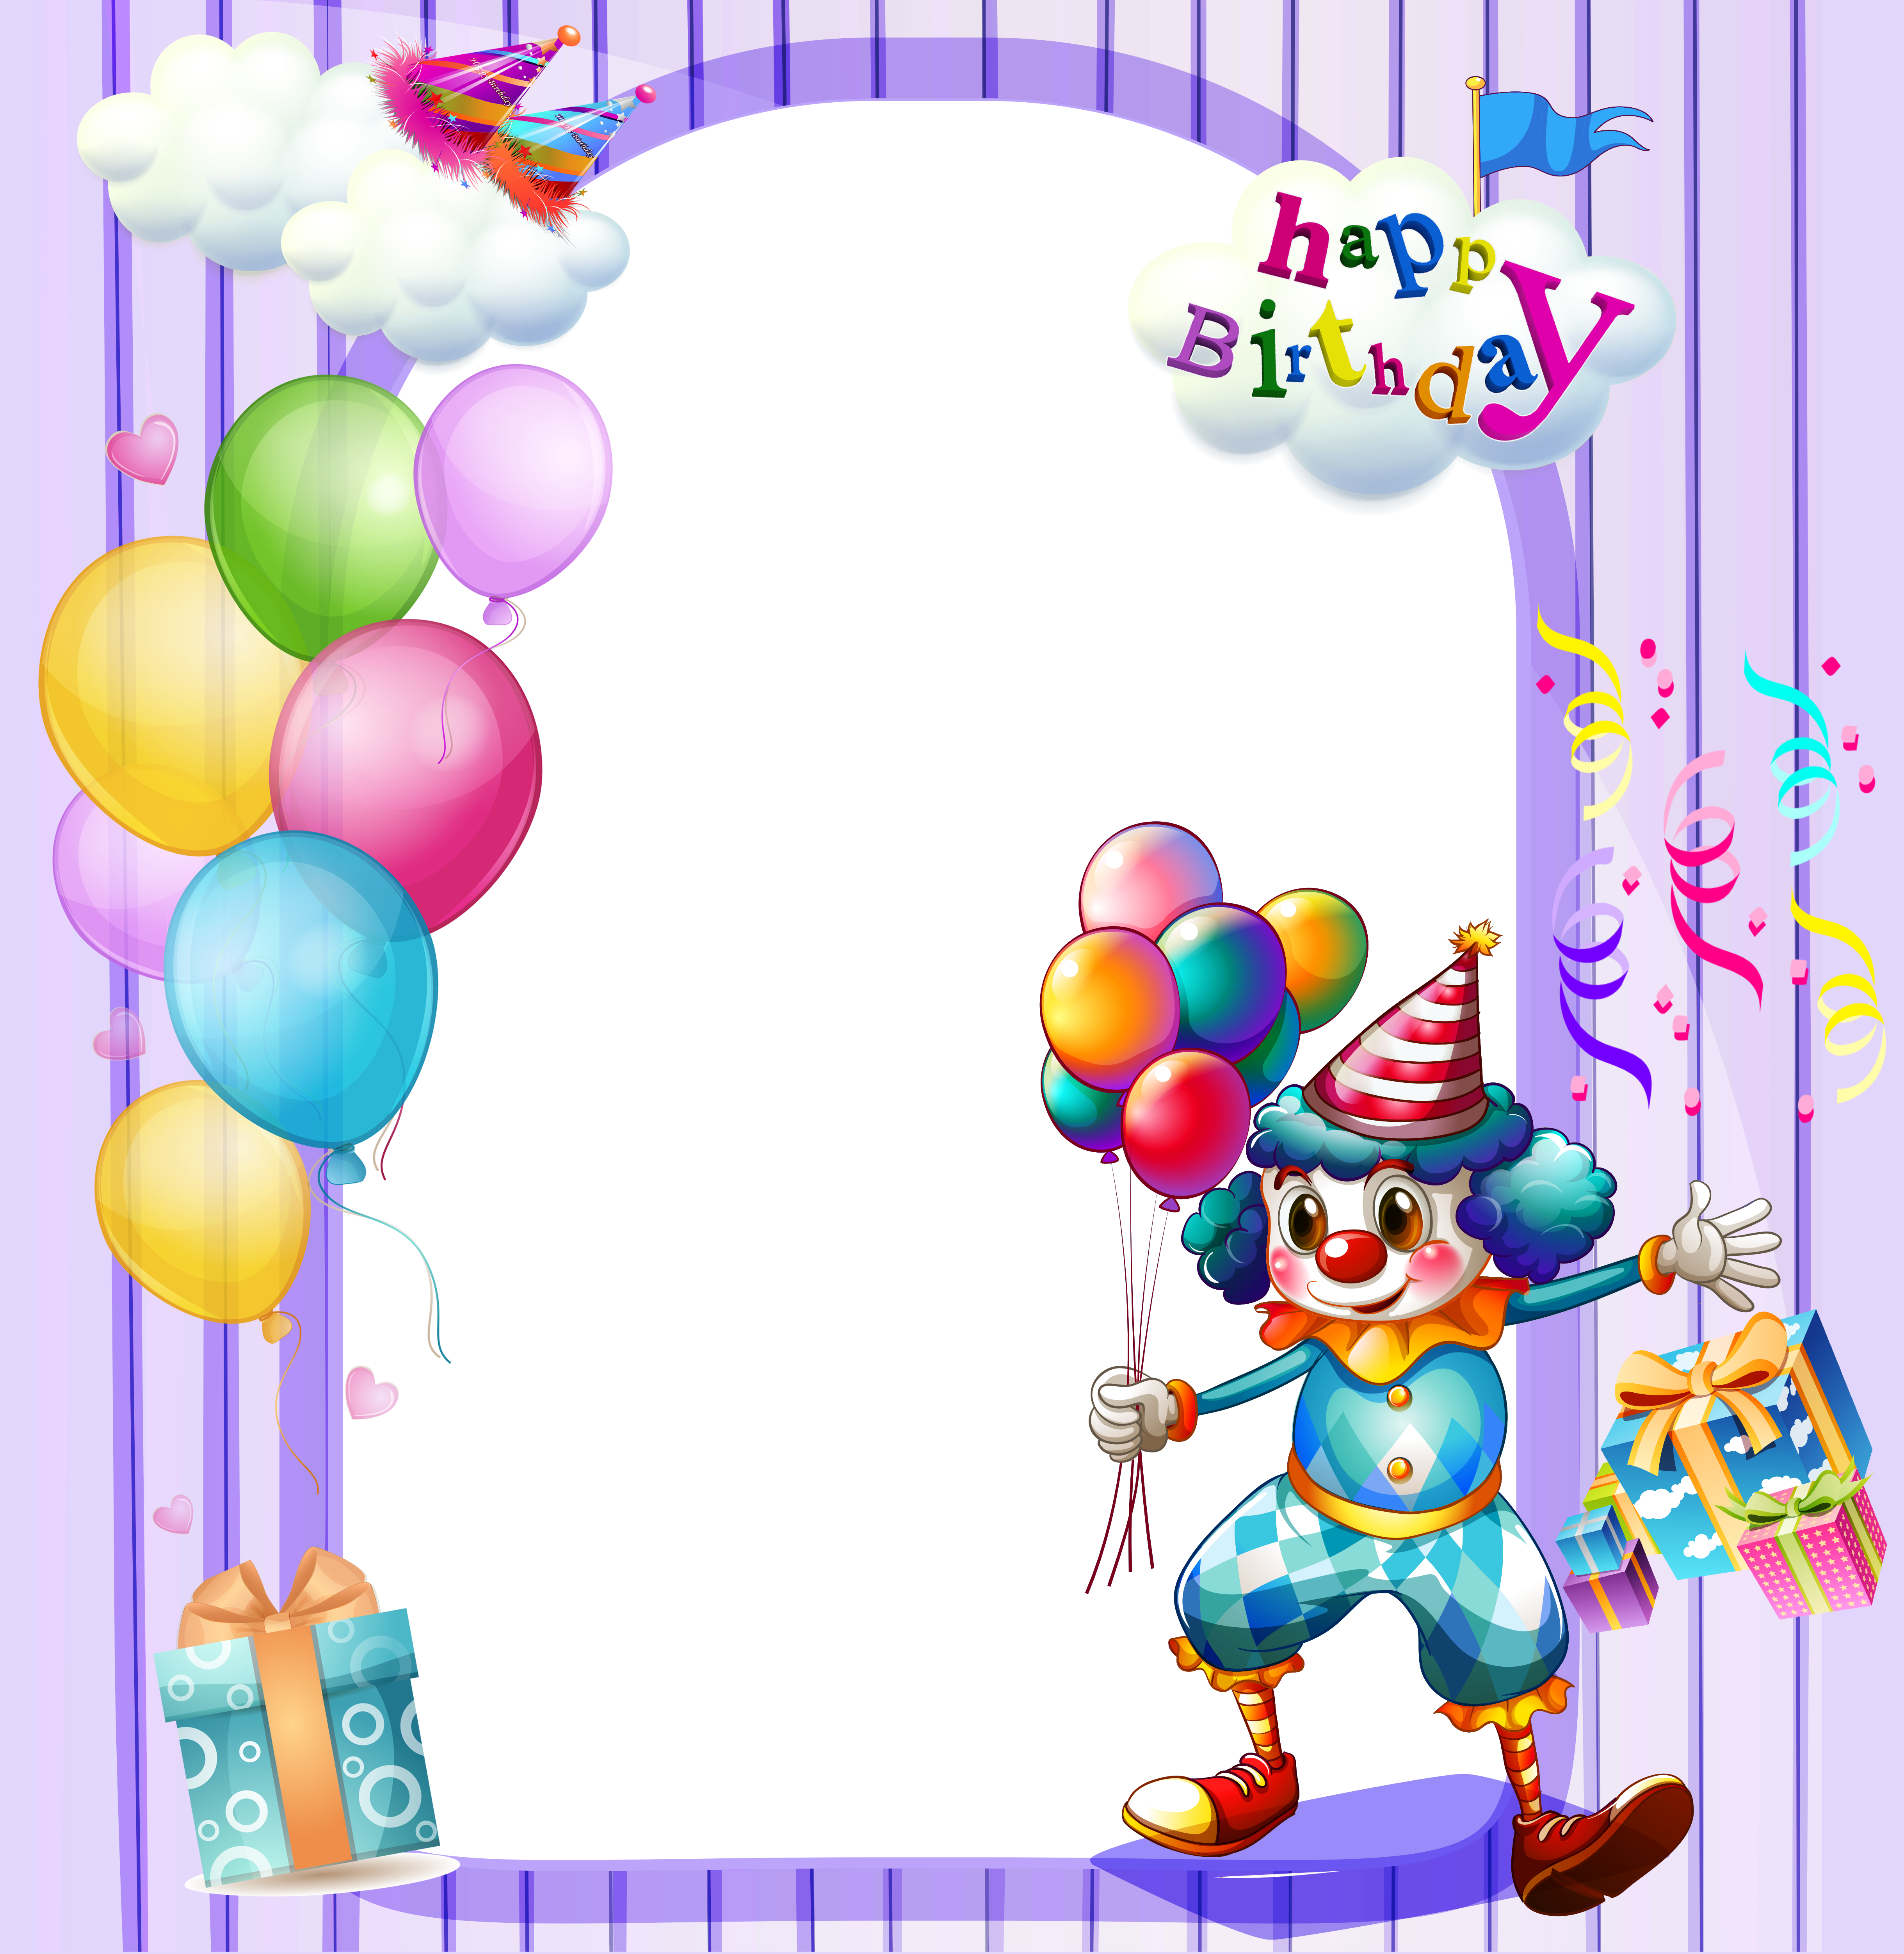 Happy 1st birthday clipart clip art freeuse stock Happy Birthday Large Transparent Frame | Gallery Yopriceville ... clip art freeuse stock